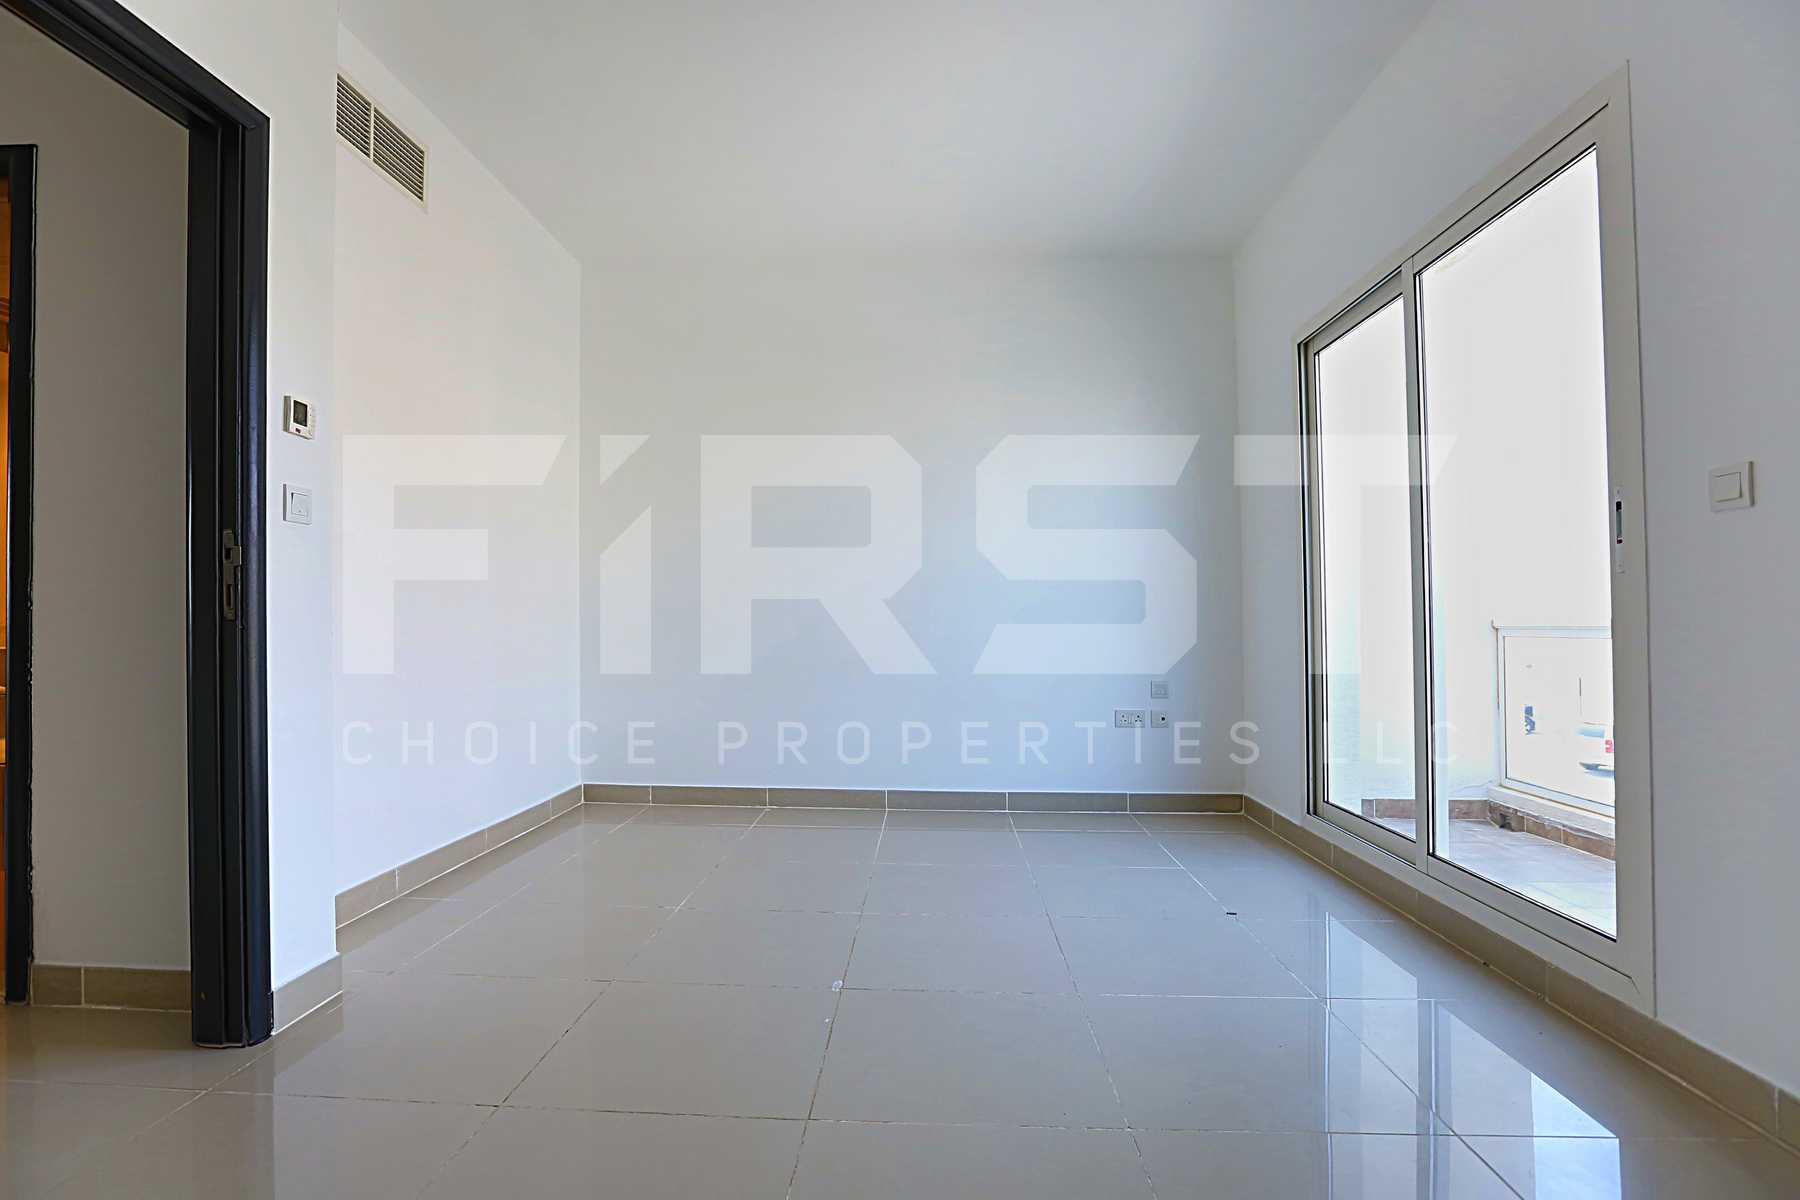 Internal Photo of 3 Bedroom Villa in Al Reef Villas Al Reef Abu Dhabi UAE 225.2 sq.m 2424 sq.ft (19).jpg